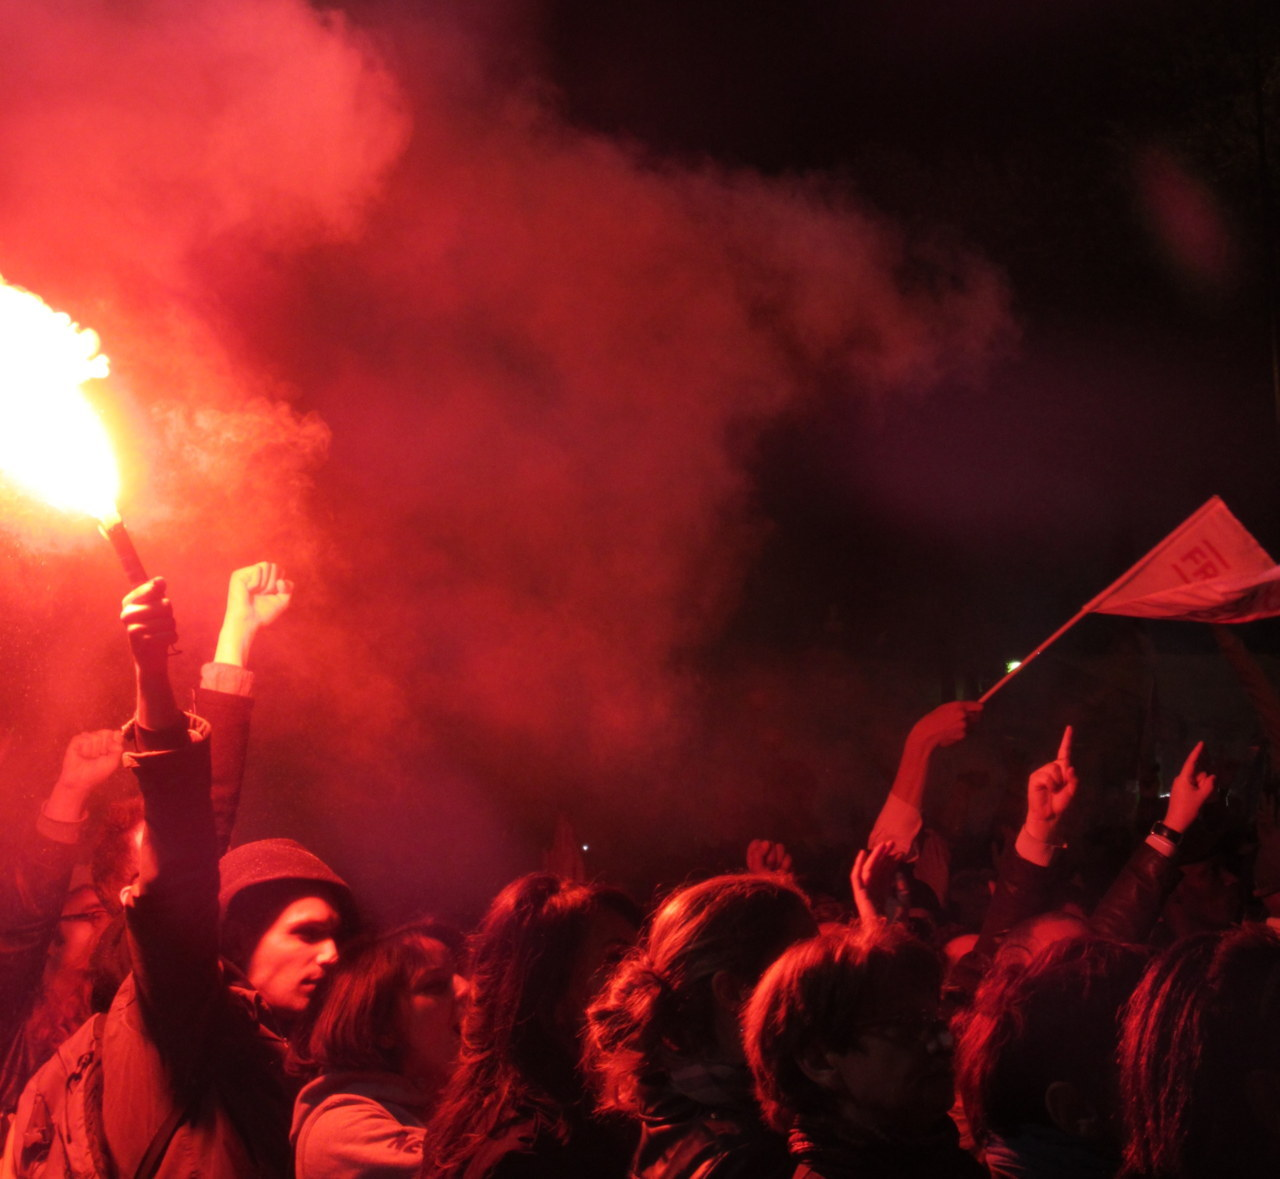 Red dawn at the Bastille: A flare lights up the crowd celebrating François Hollande's election as president of France the night of May 6, 2012.  Tracy McNicoll took this and more amazing shots you can see on Rues de Paradis. For her article on the elections and Hollande as the anti-Sarkozy, see The Daily Beast.